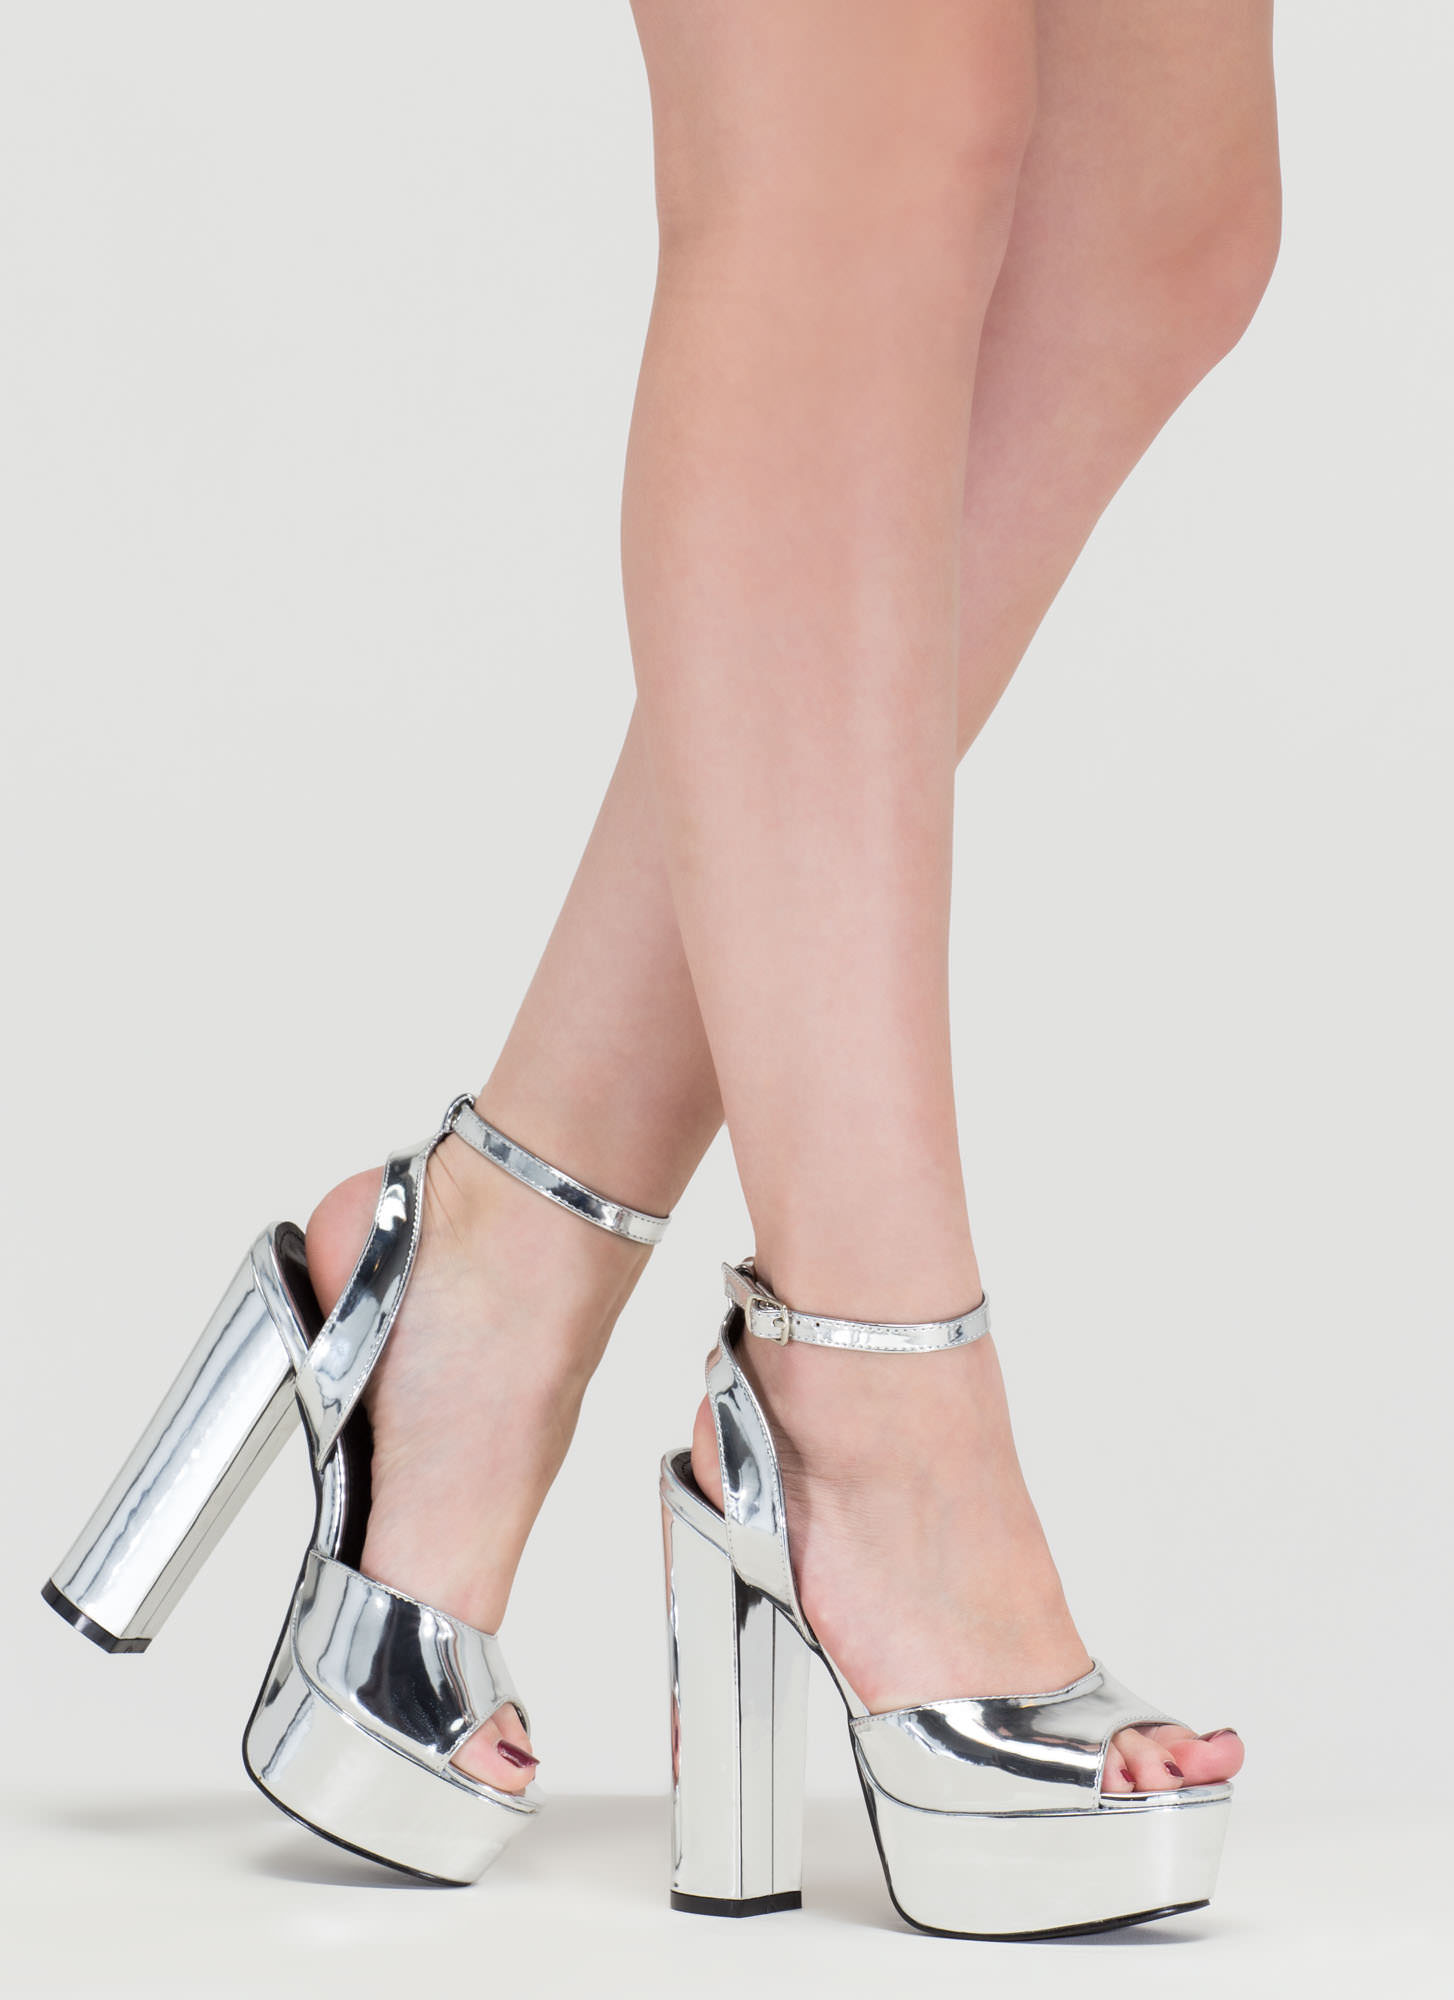 Silver Metallic Platform Heels - Is Heel